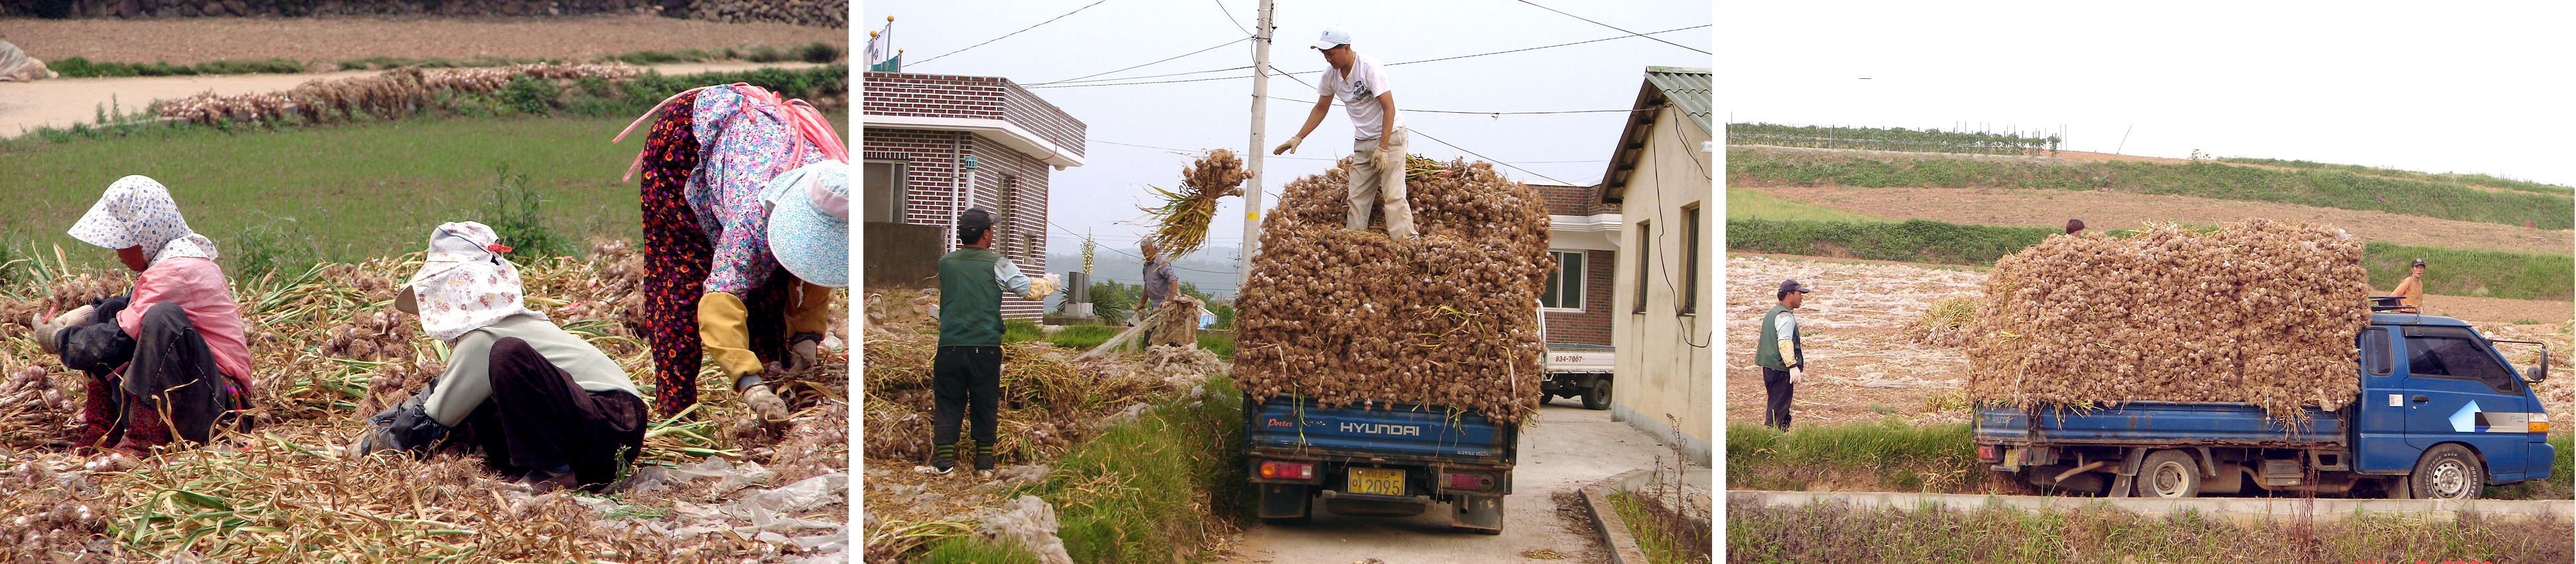 Korea-Goheunggun-Garlic harvest and transport.jpg